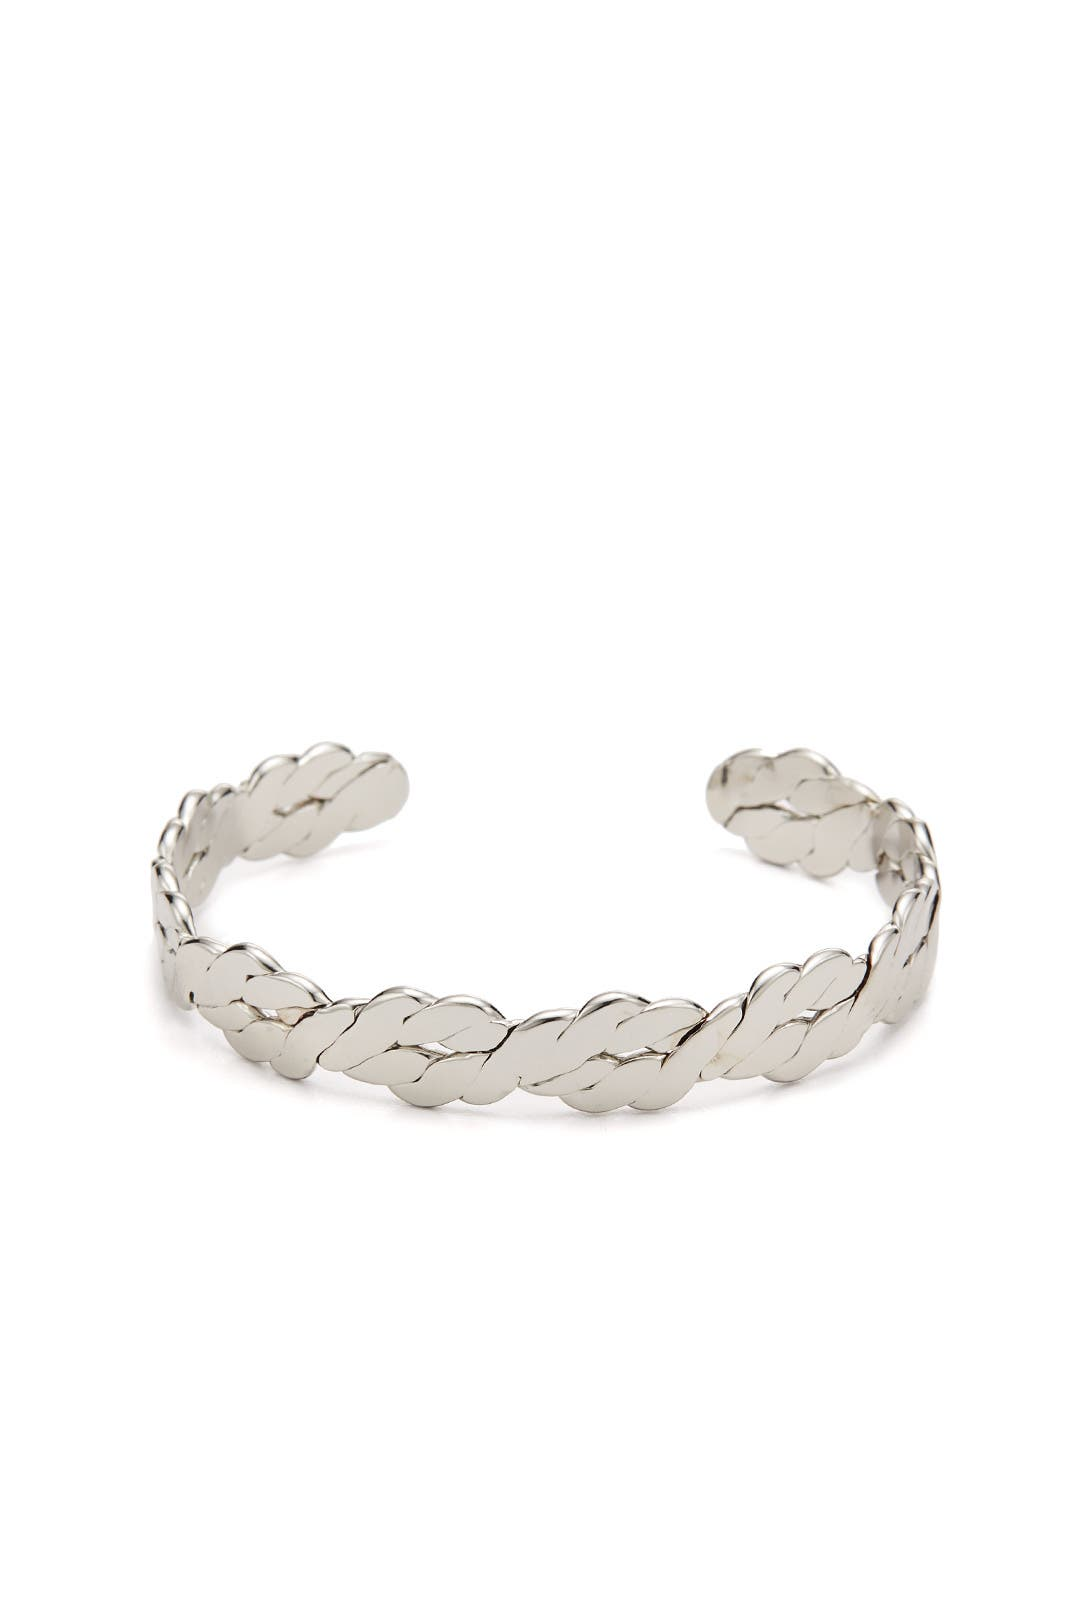 16af9bd11d6d1c Bracelets - Slate   Willow Accessories Great selection and prices ...